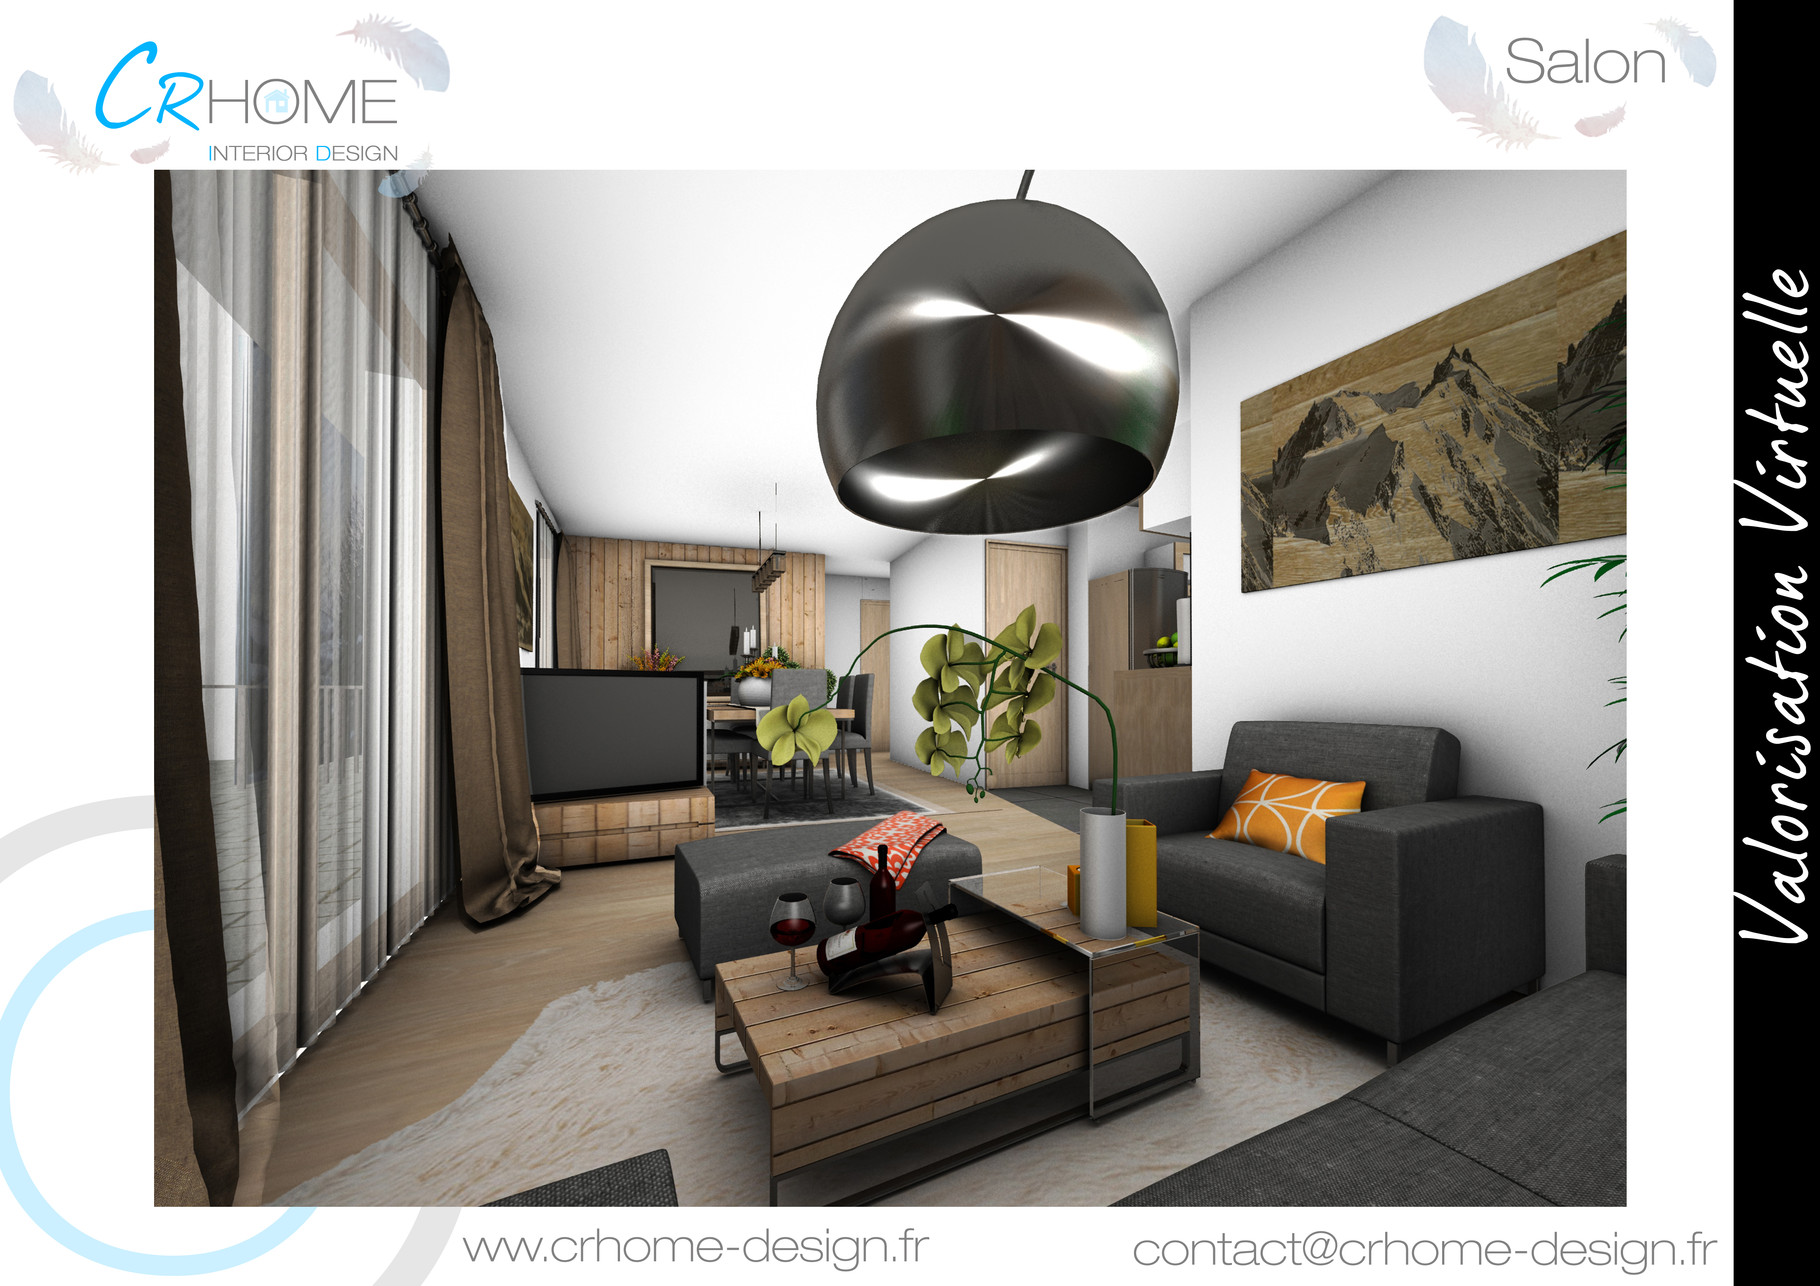 Decorateur Interieur En Ligne appartement de montagne - crhome-design - architecture d